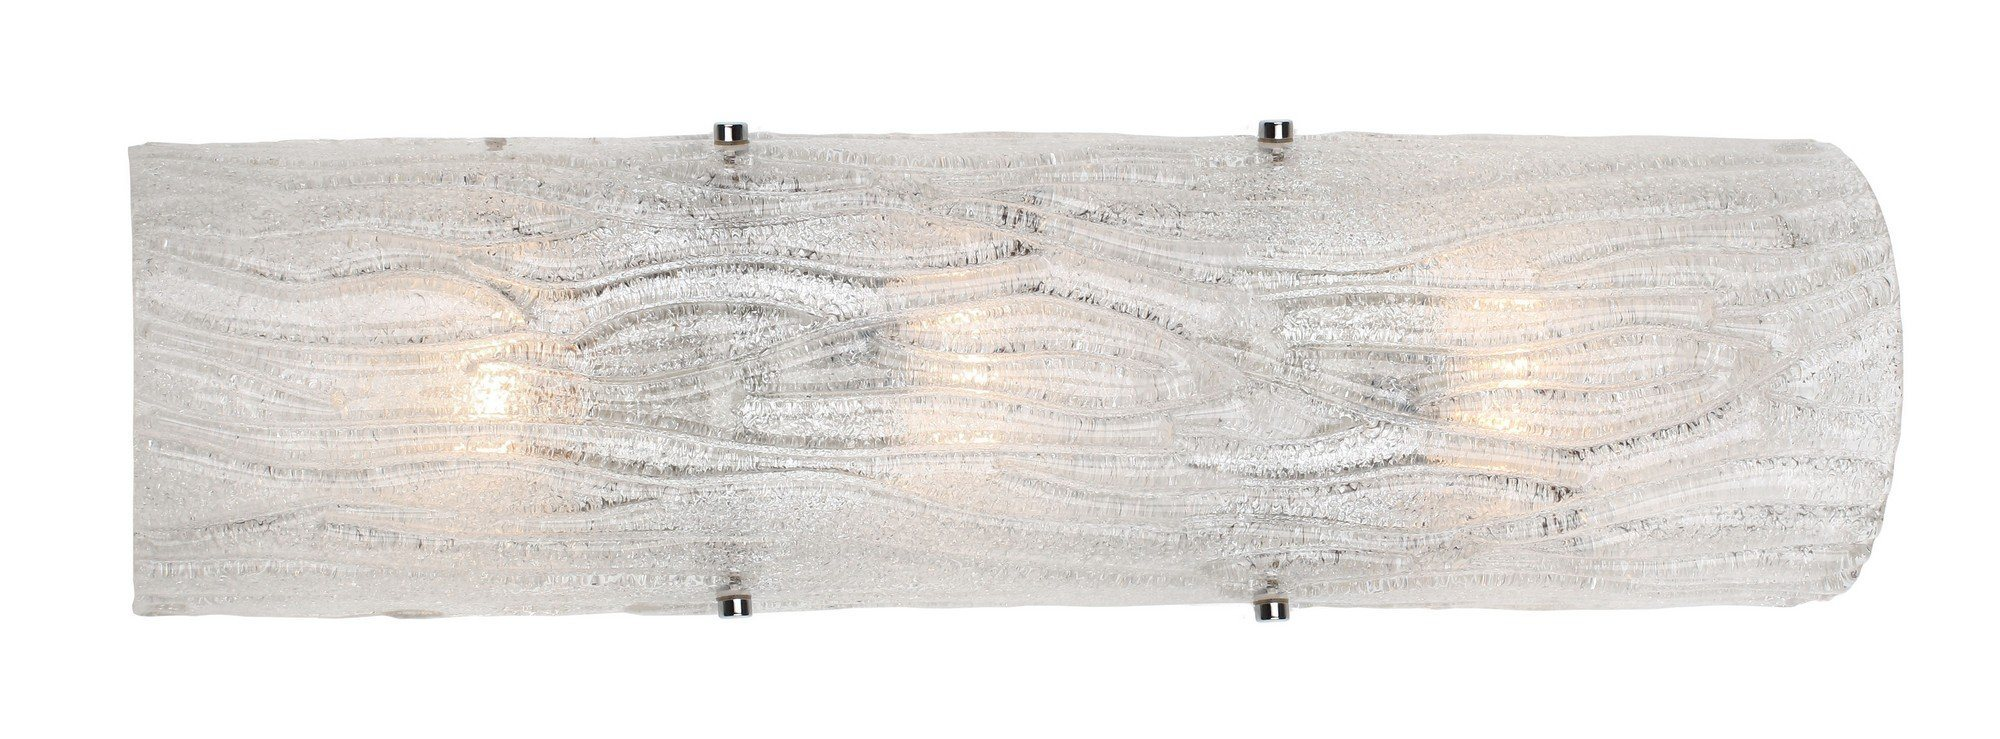 Brilliance 3-Lt Sconce Fixture - Chrome Wall Varaluz